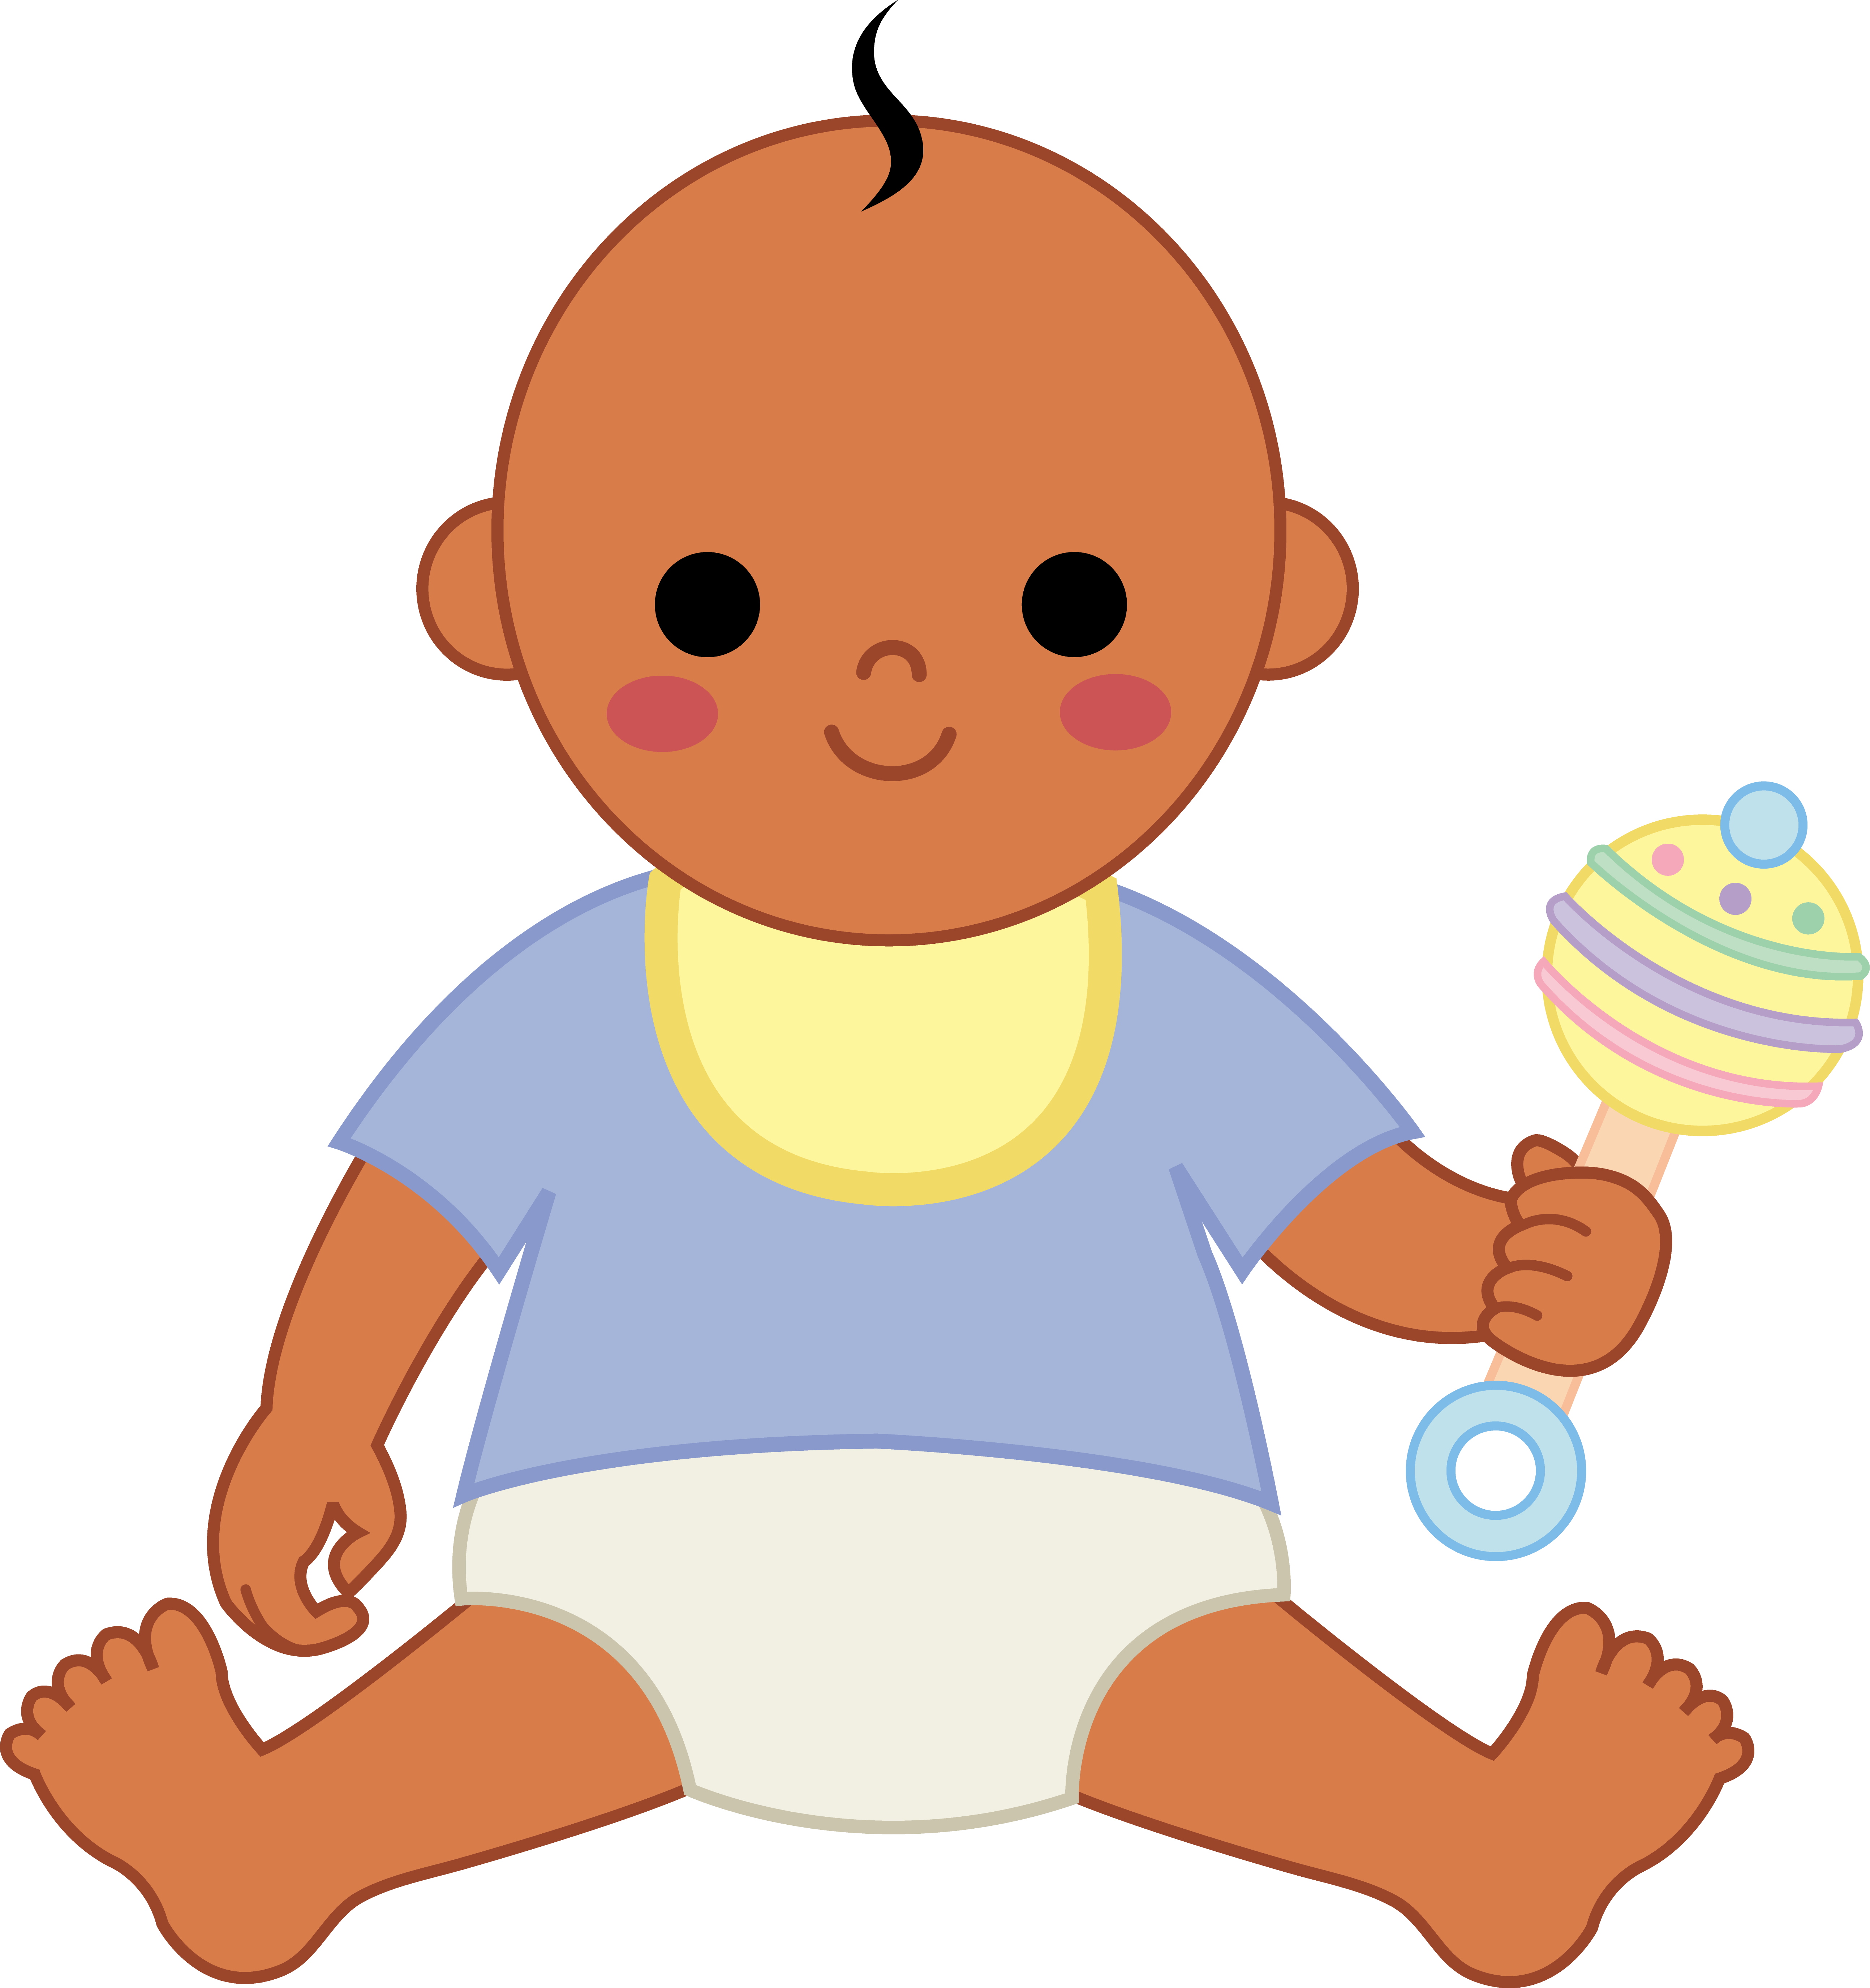 clip library download Little clipart baby sitting. Boy png mart.